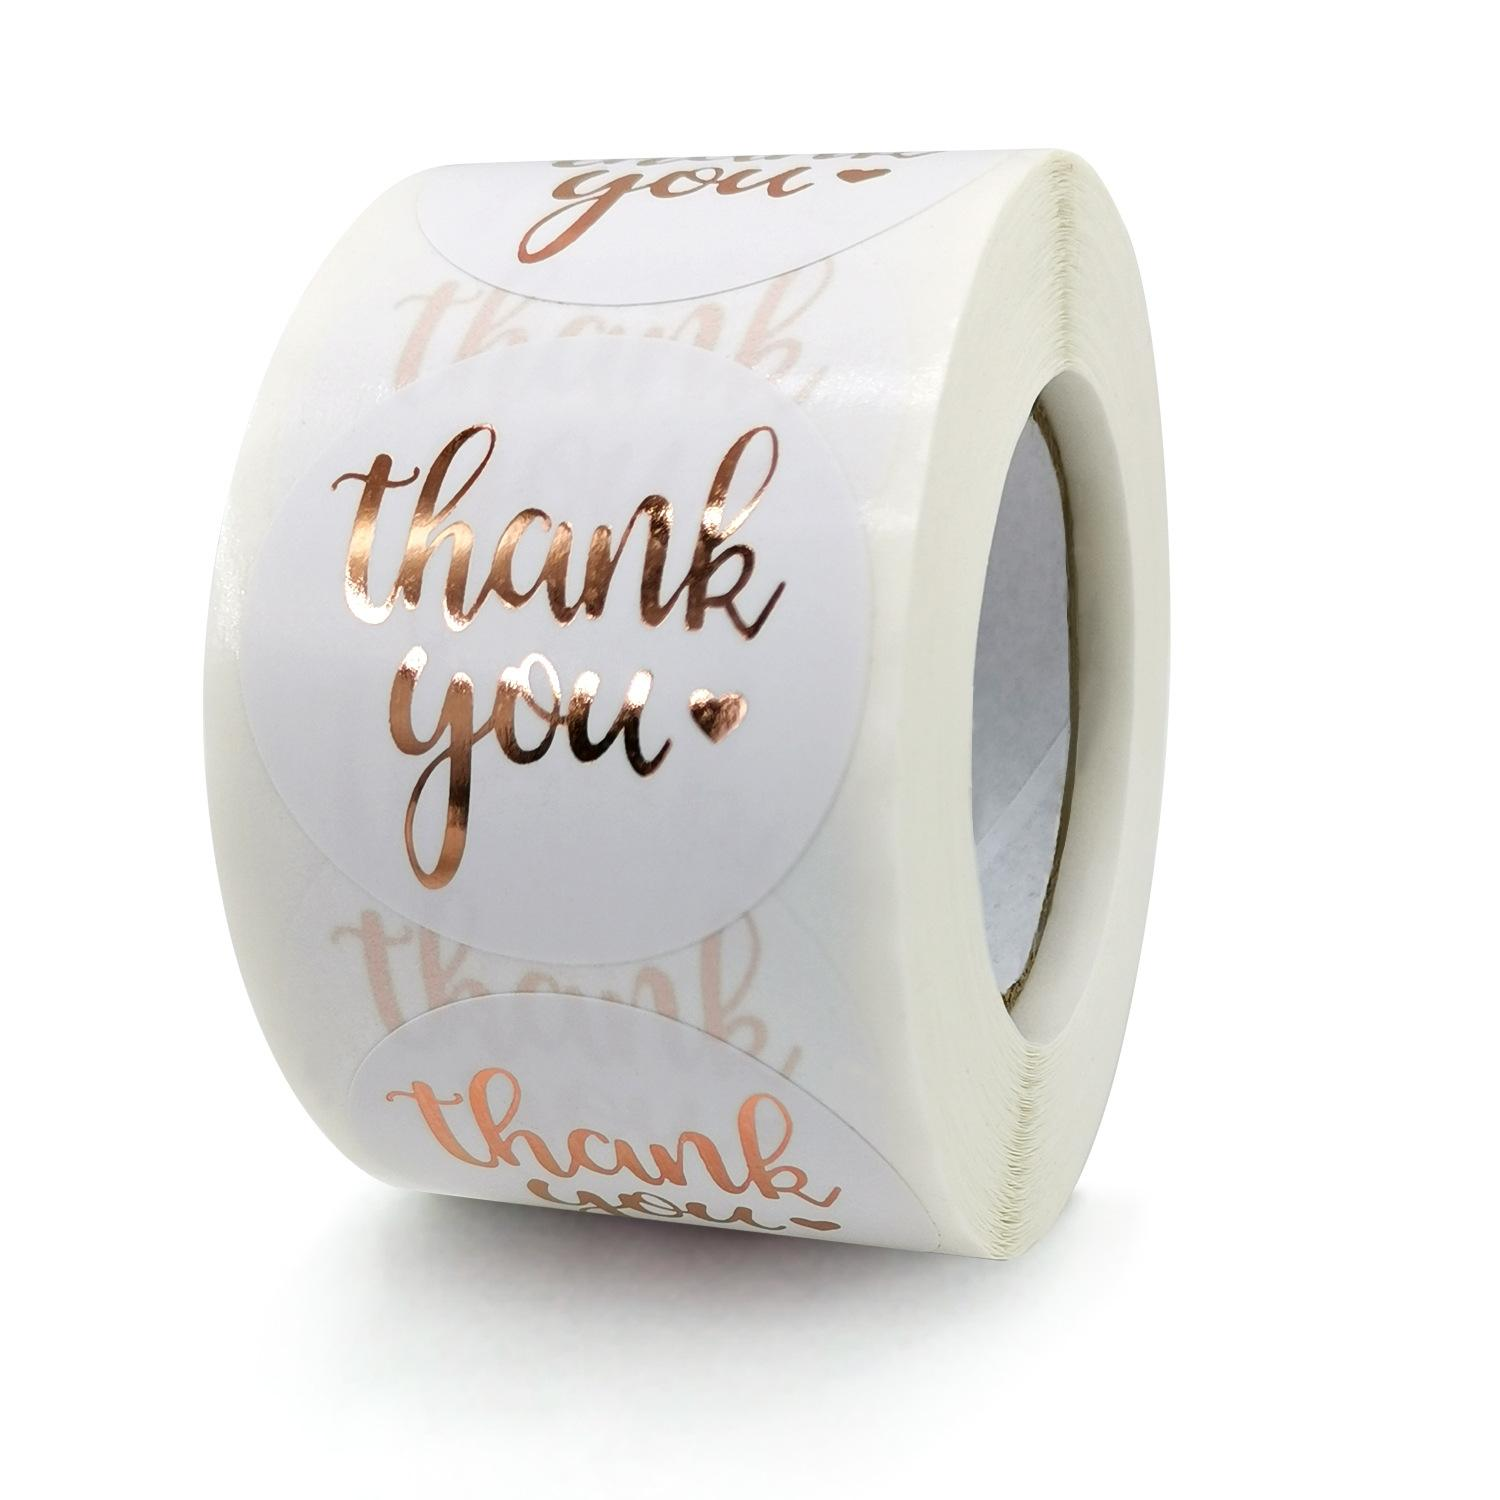 3.8cm 1.5inch Circle Rose Pink Foil Thank You Sticker Label Christmas Gifts Package Self Seal Packing Stickers for Friends Colleagues